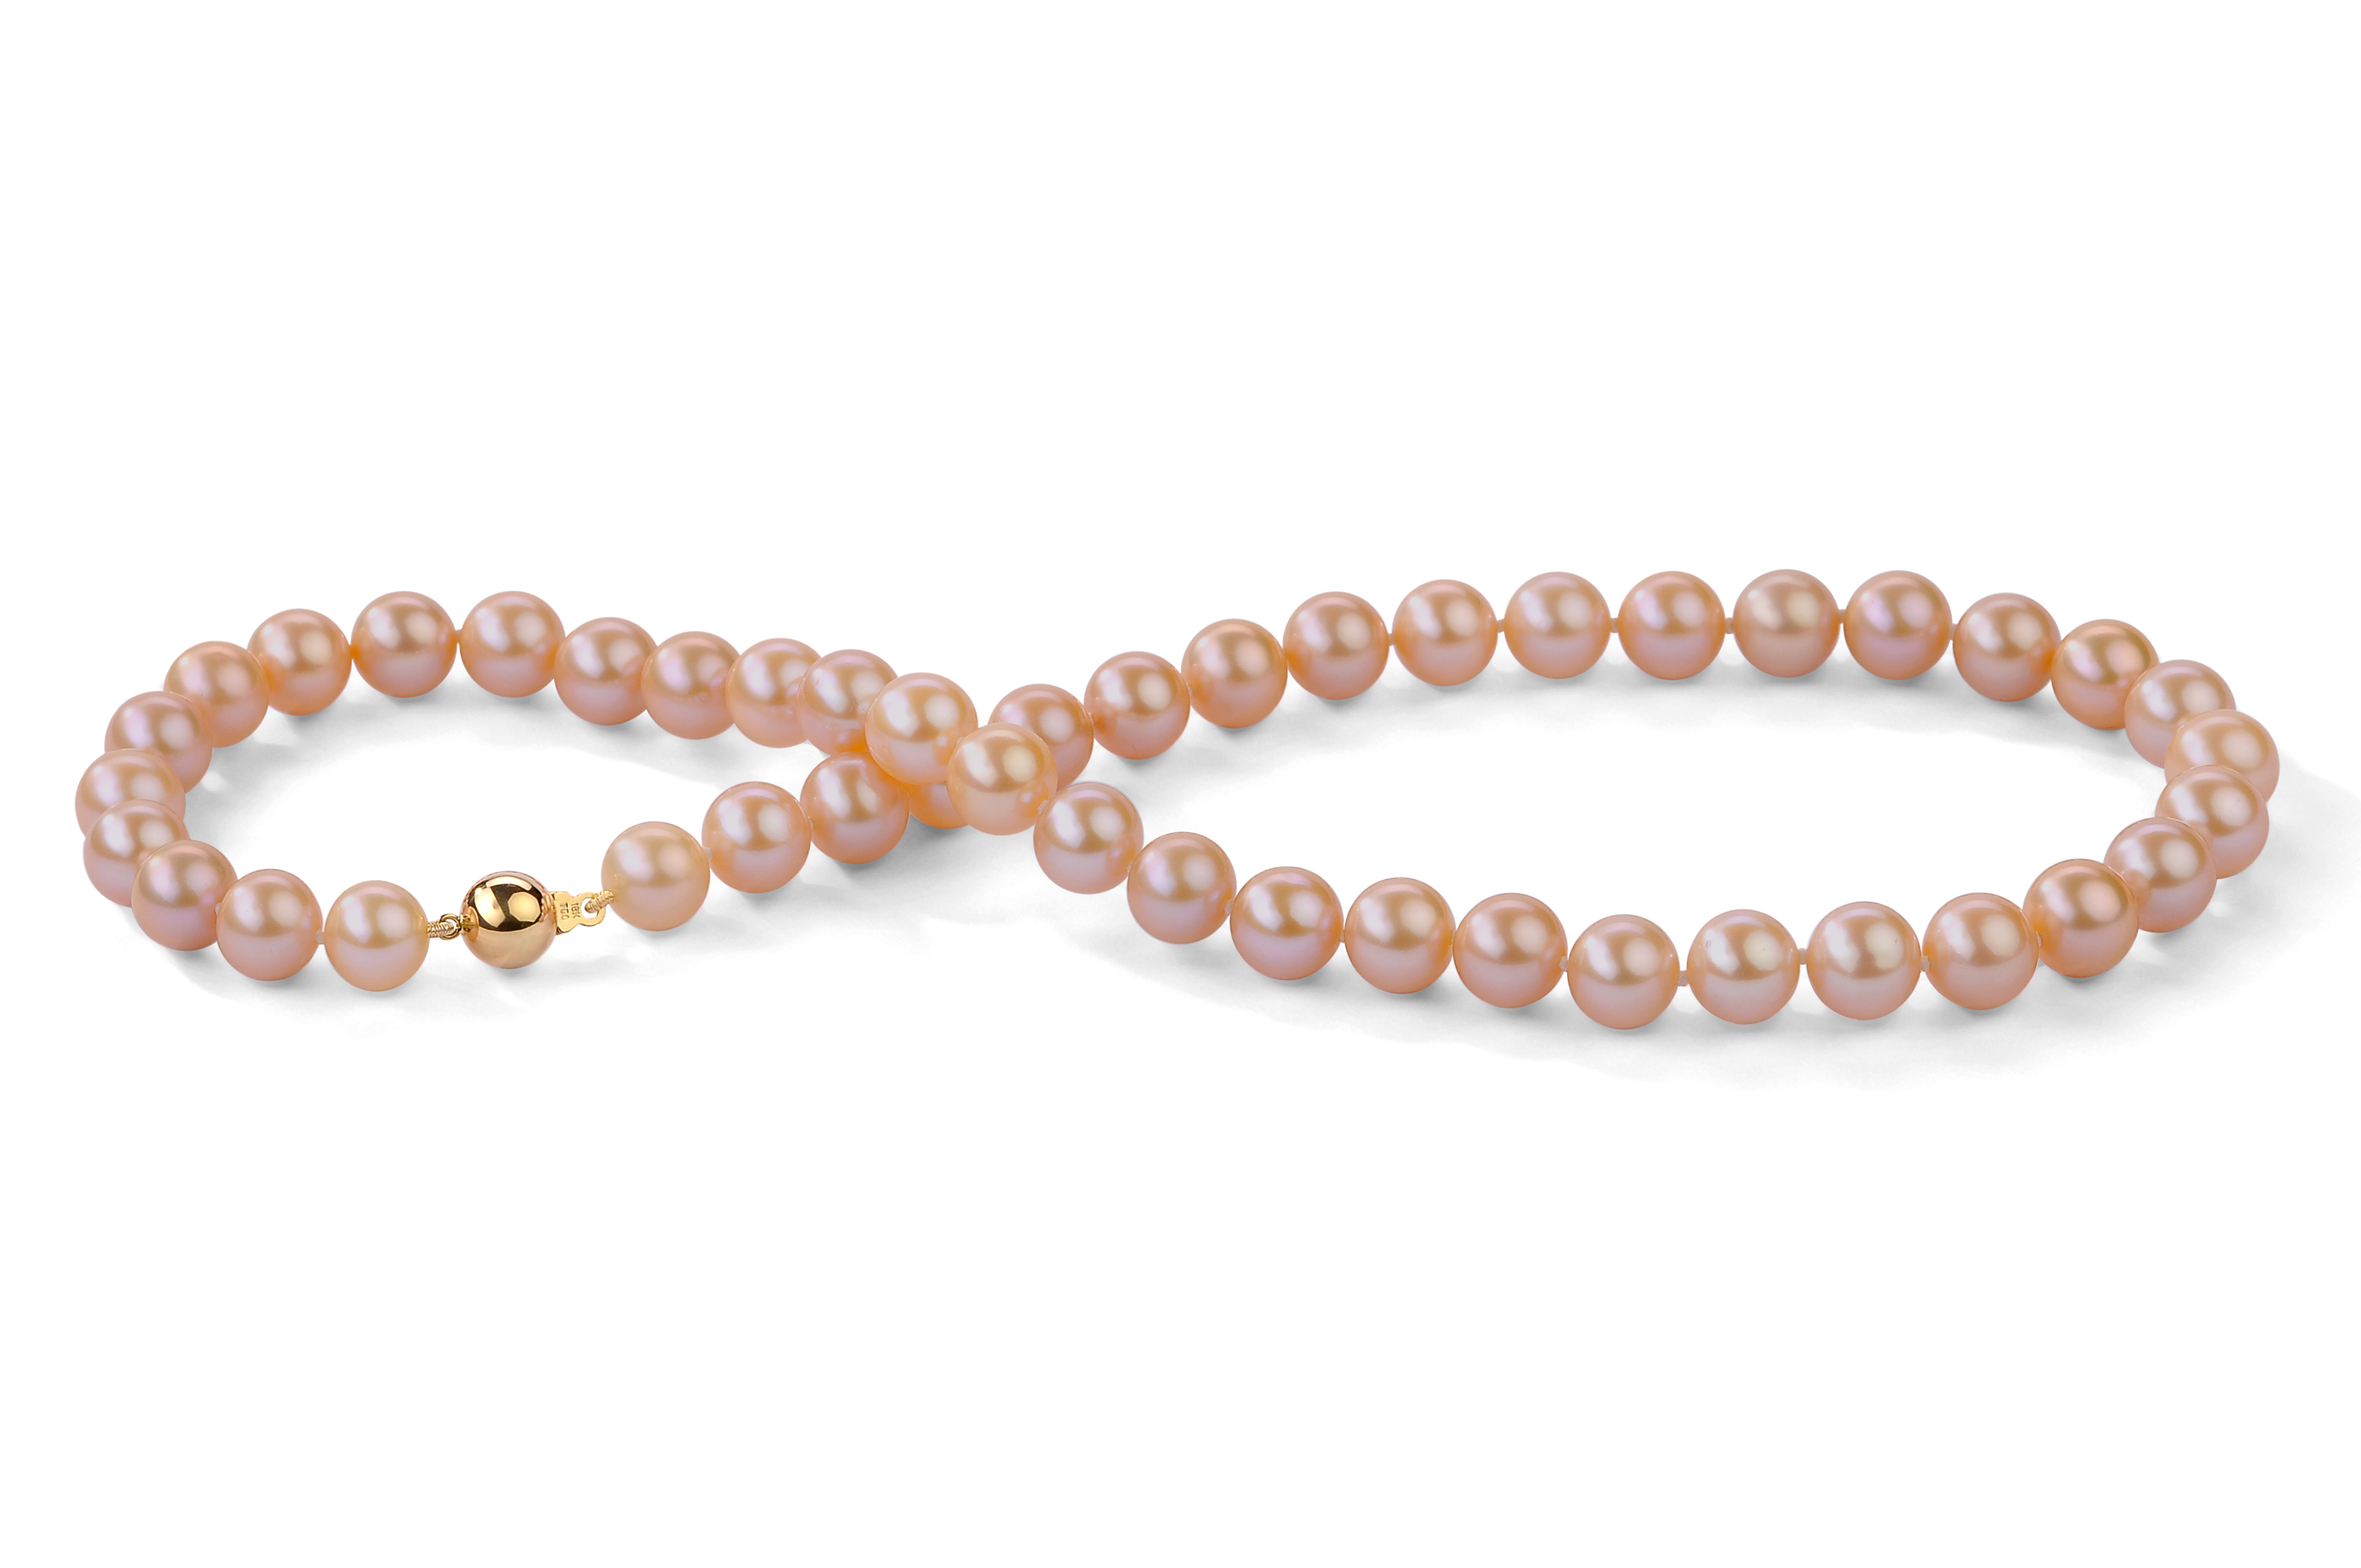 Peach Freshwater Pearl Necklace